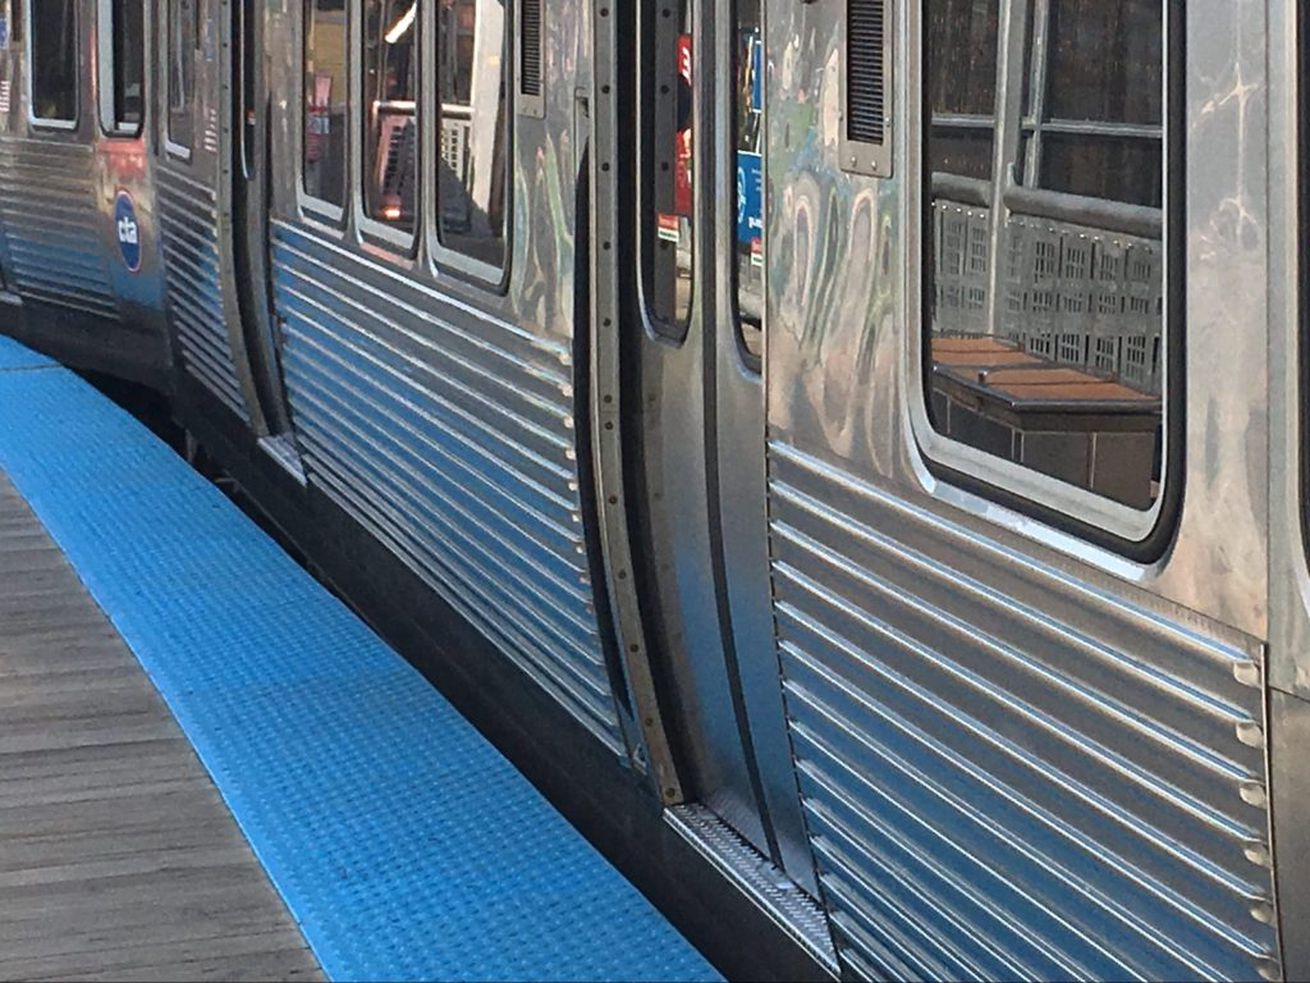 A man died after falling onto the train tracks April 5, 2020, at the Howard Station.